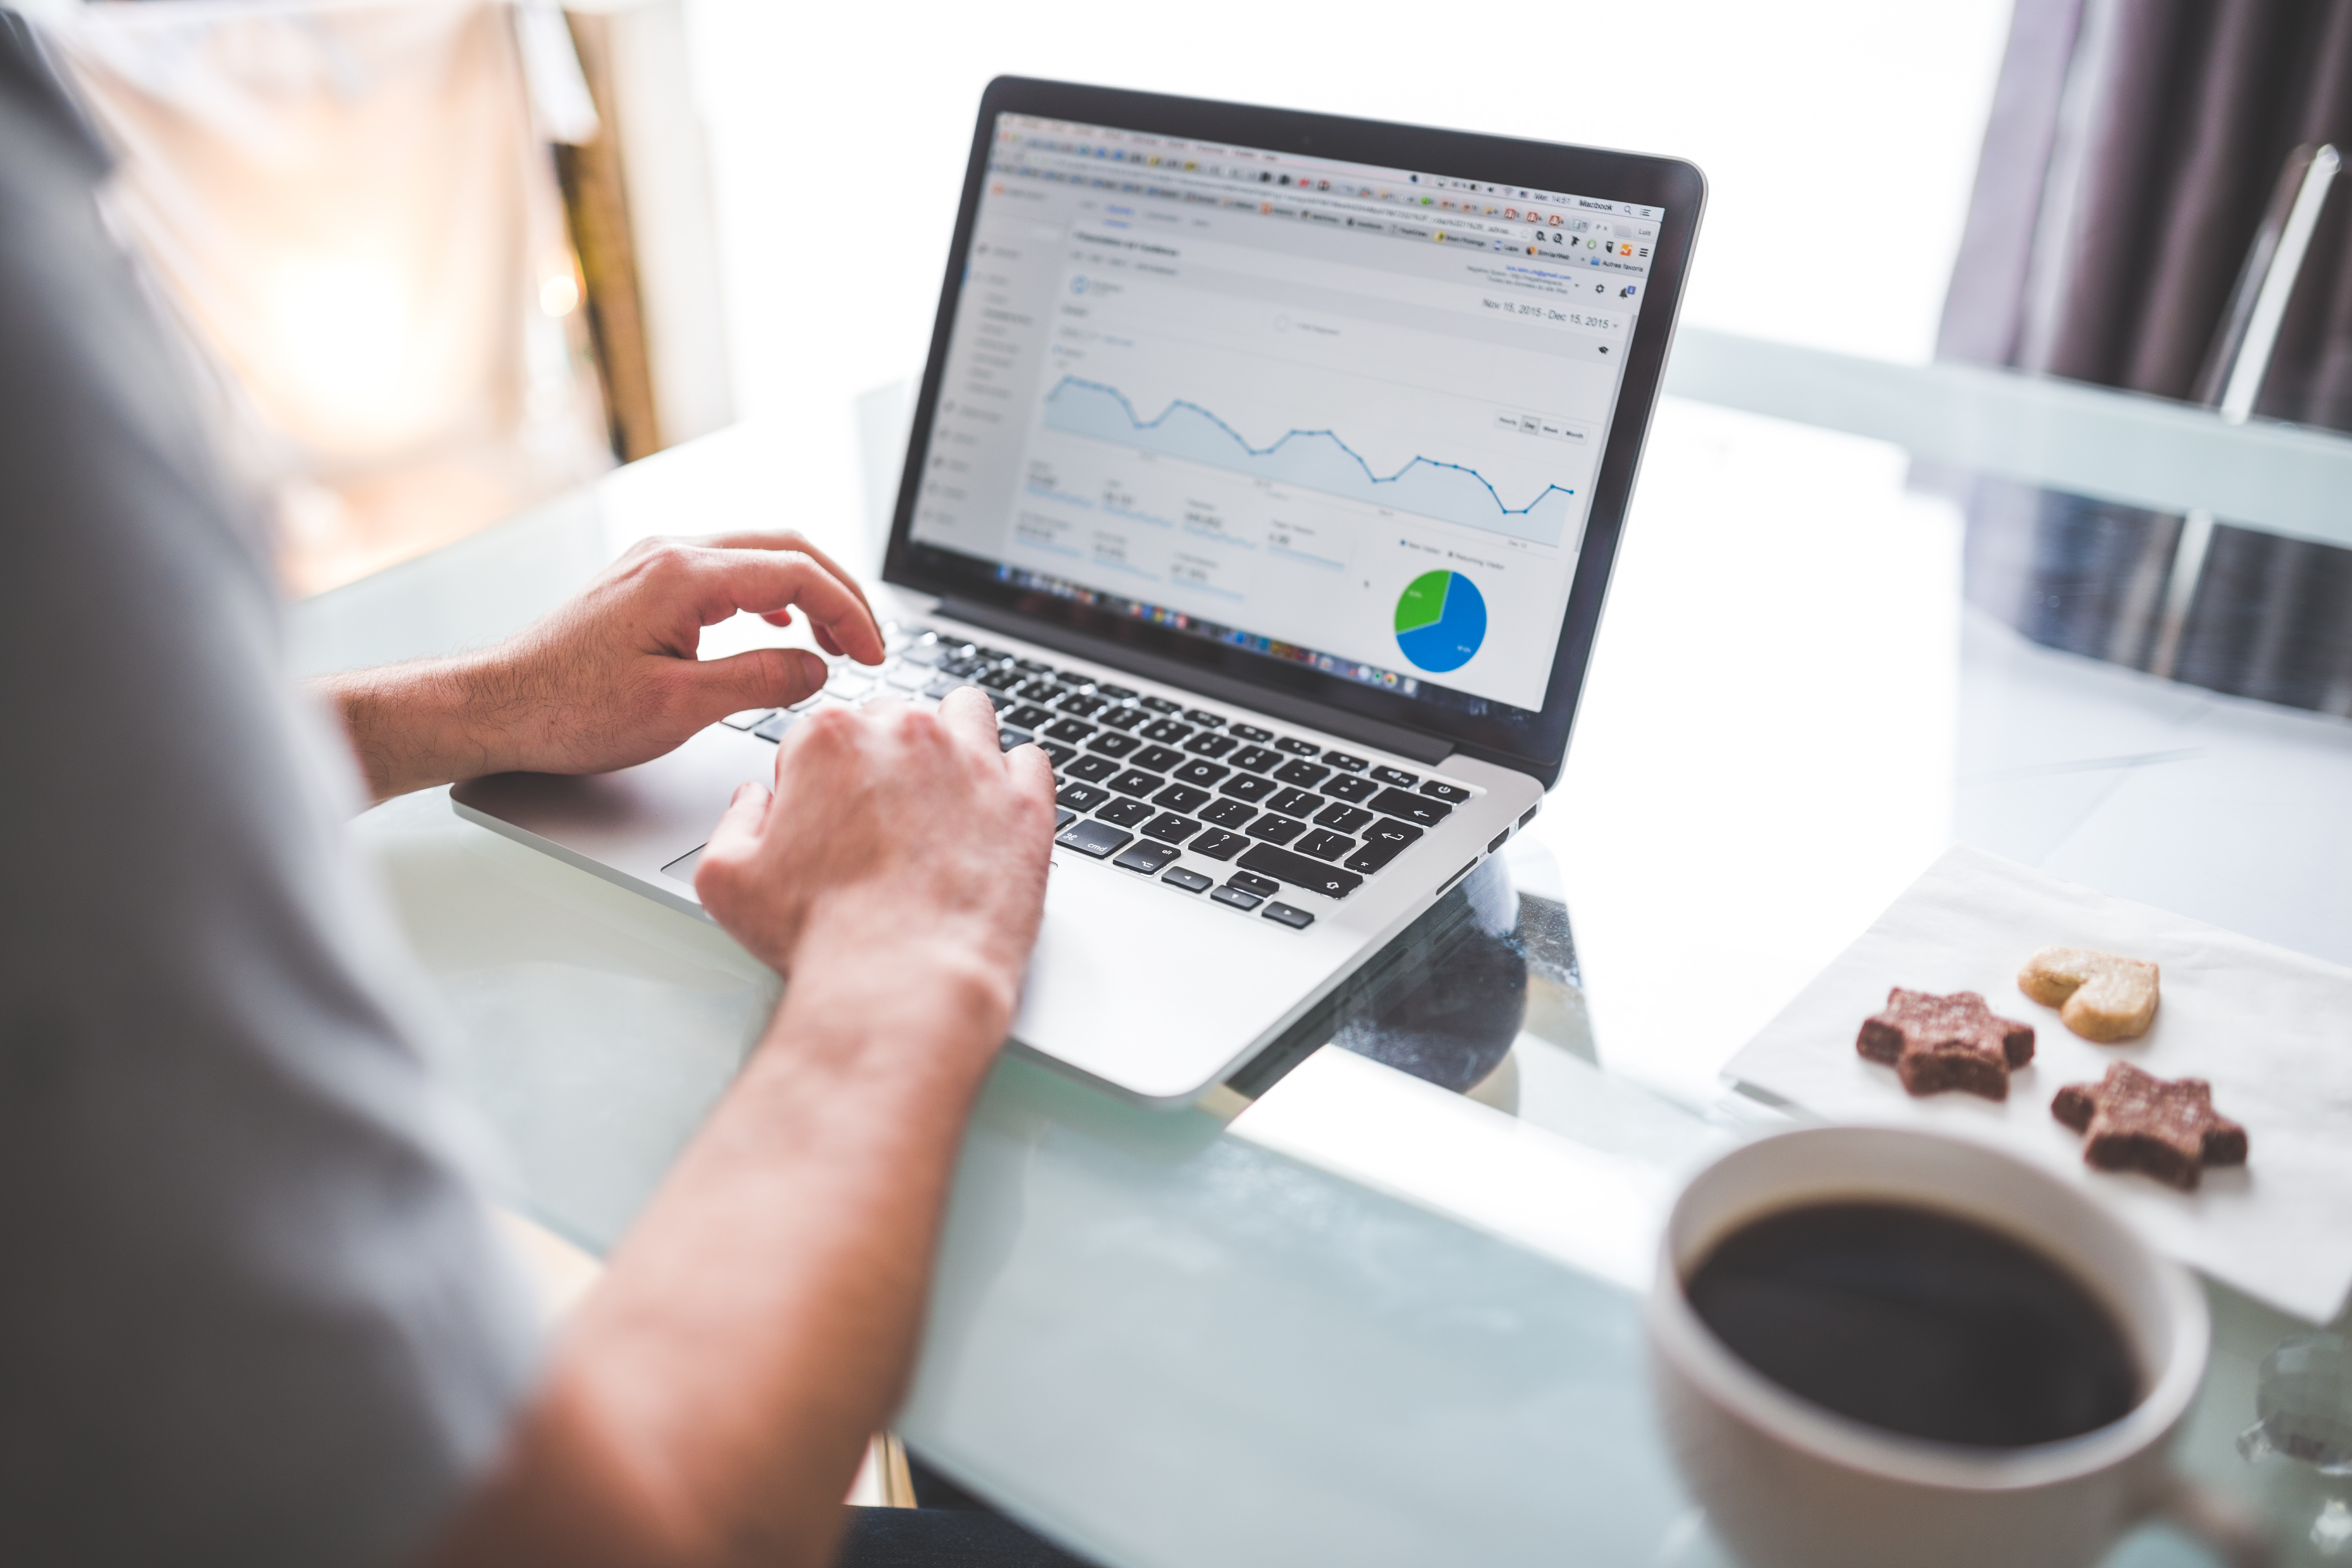 essential forecasts to help you build your business, financial forecasts, cashflow, client growth rate, essential forecasts to improve your business decision-making